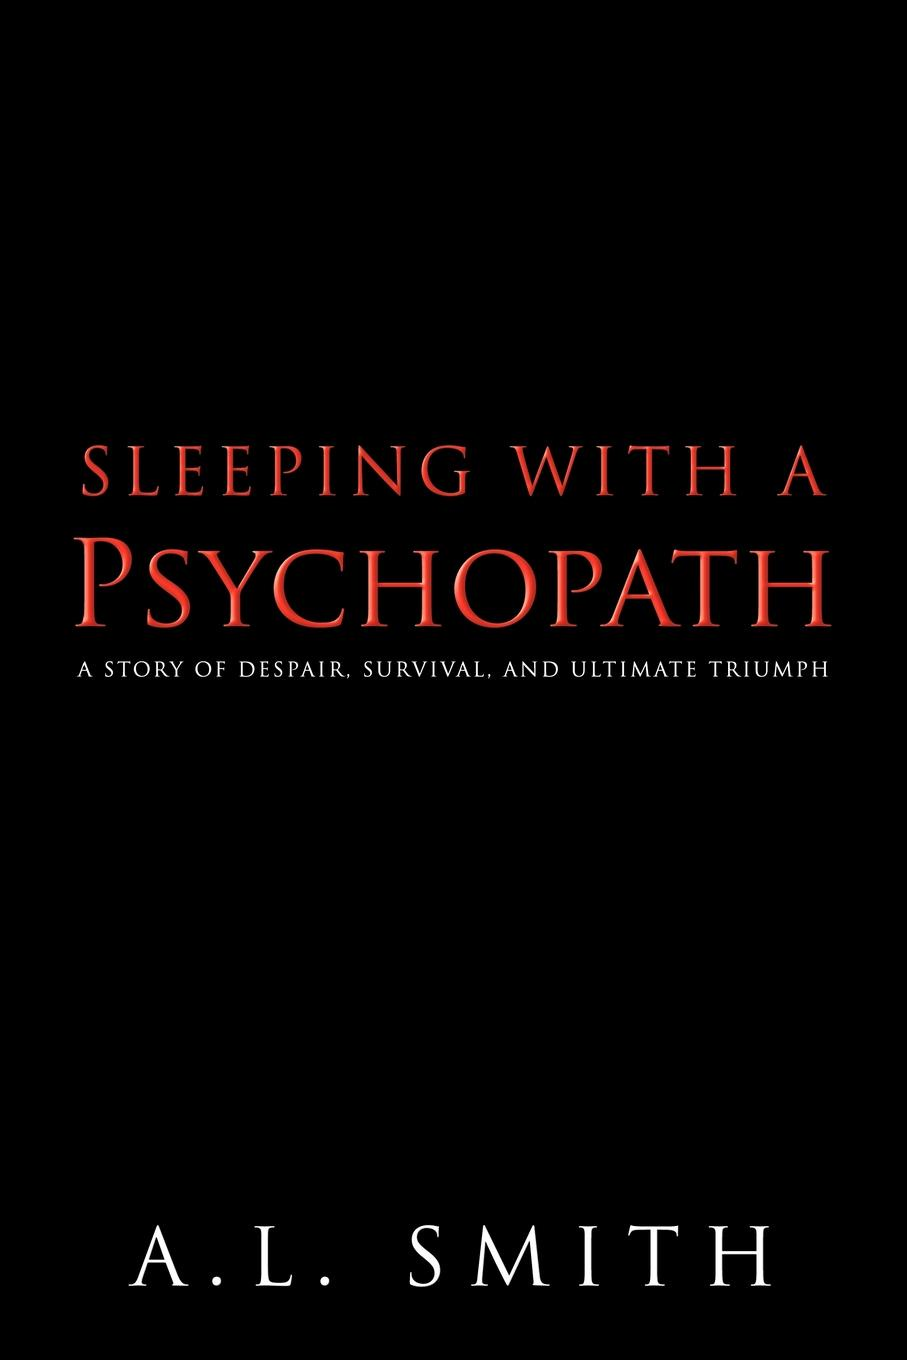 Smith A. L. Smith Sleeping with a Psychopath. A Story of Despair, Survival, and Ultimate Triumph jd mcpherson jd mcpherson let the good times roll